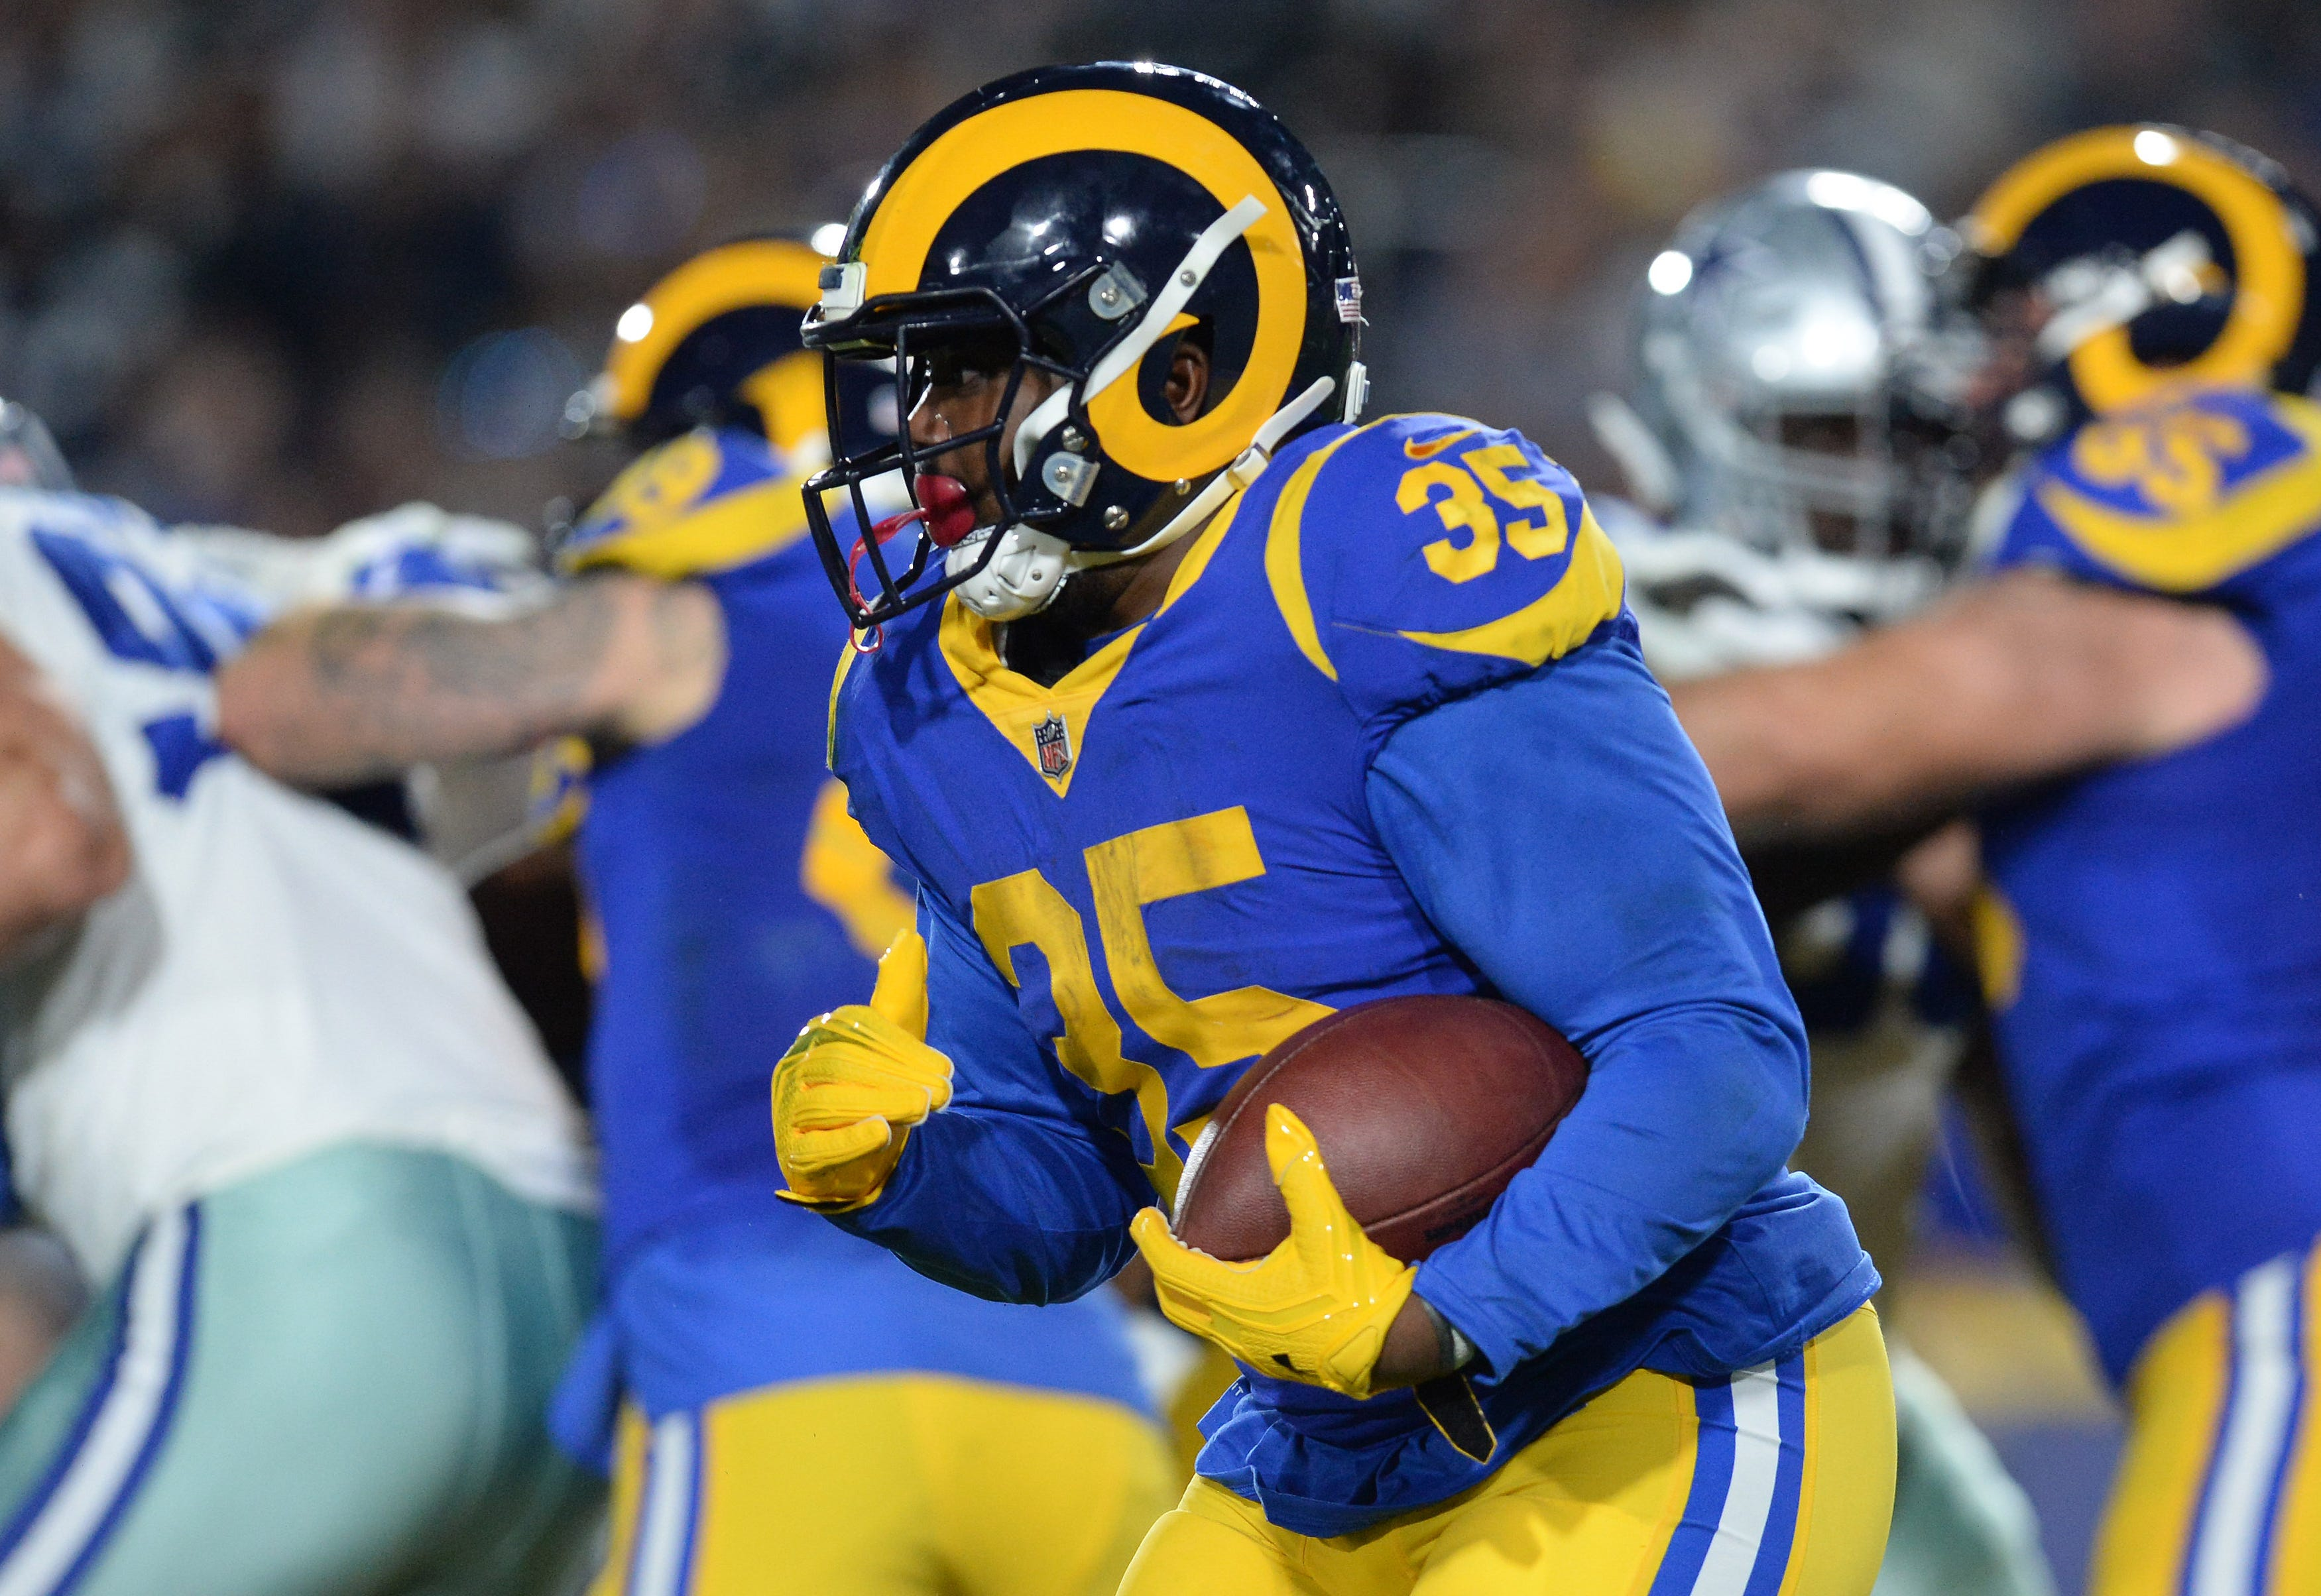 C.J. Anderson rushed for 189 yards and two touchdowns in the Rams' three playoff games last season. (Photo: Gary A. Vasquez, USA TODAY Sports)